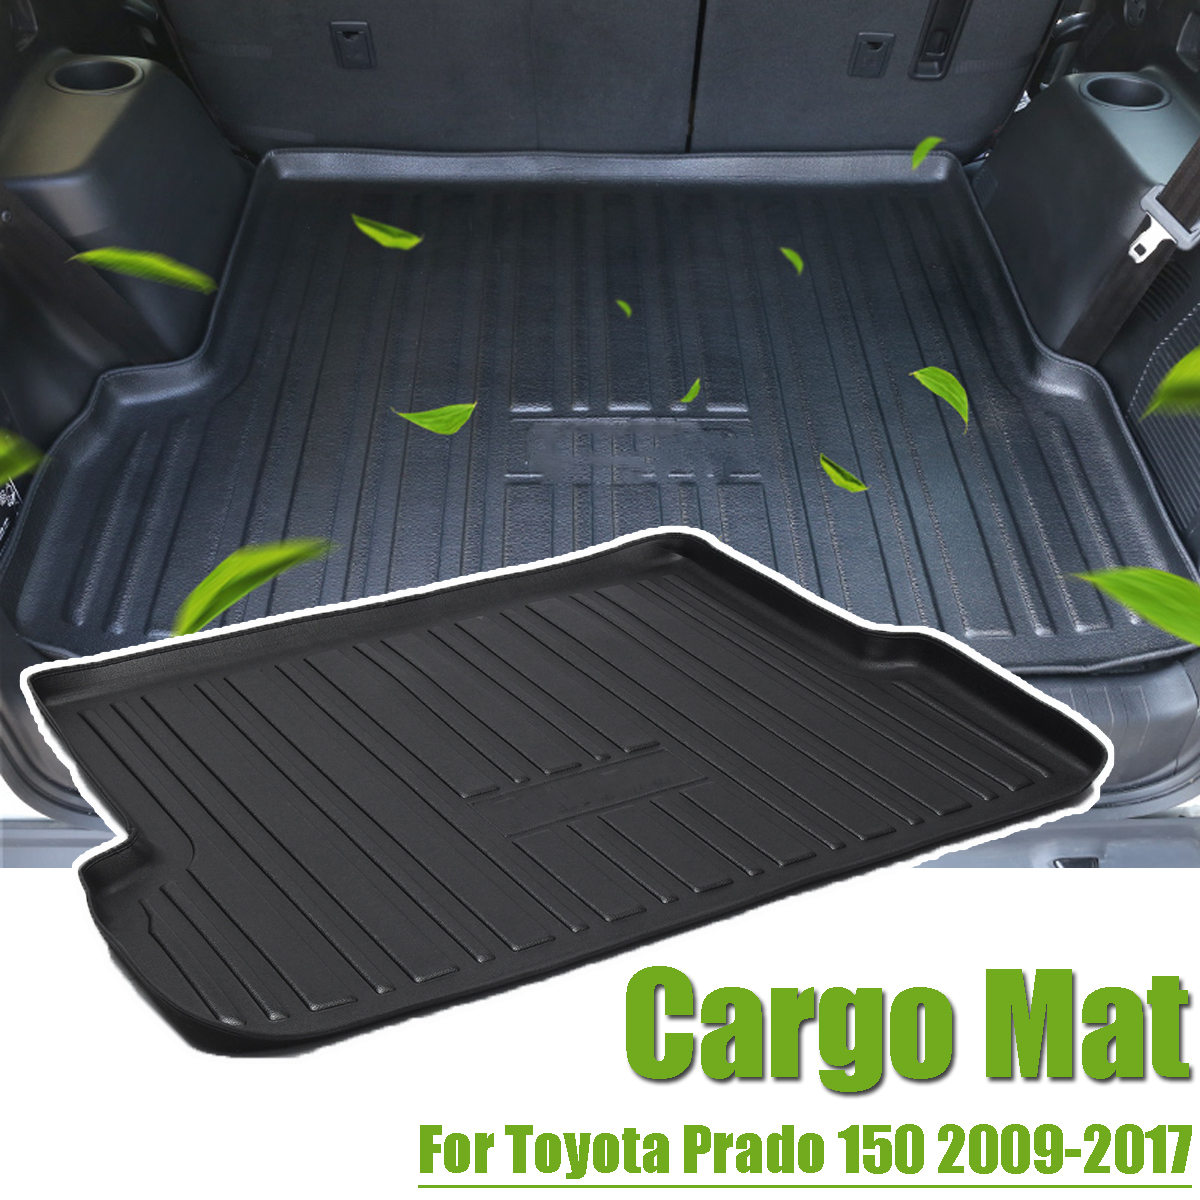 For Toyota Prado 150 2009 2018 Car Rear Boot Liner Trunk Cargo Mat Tray Floor Carpet Mud Pad Protector Interior Accessories